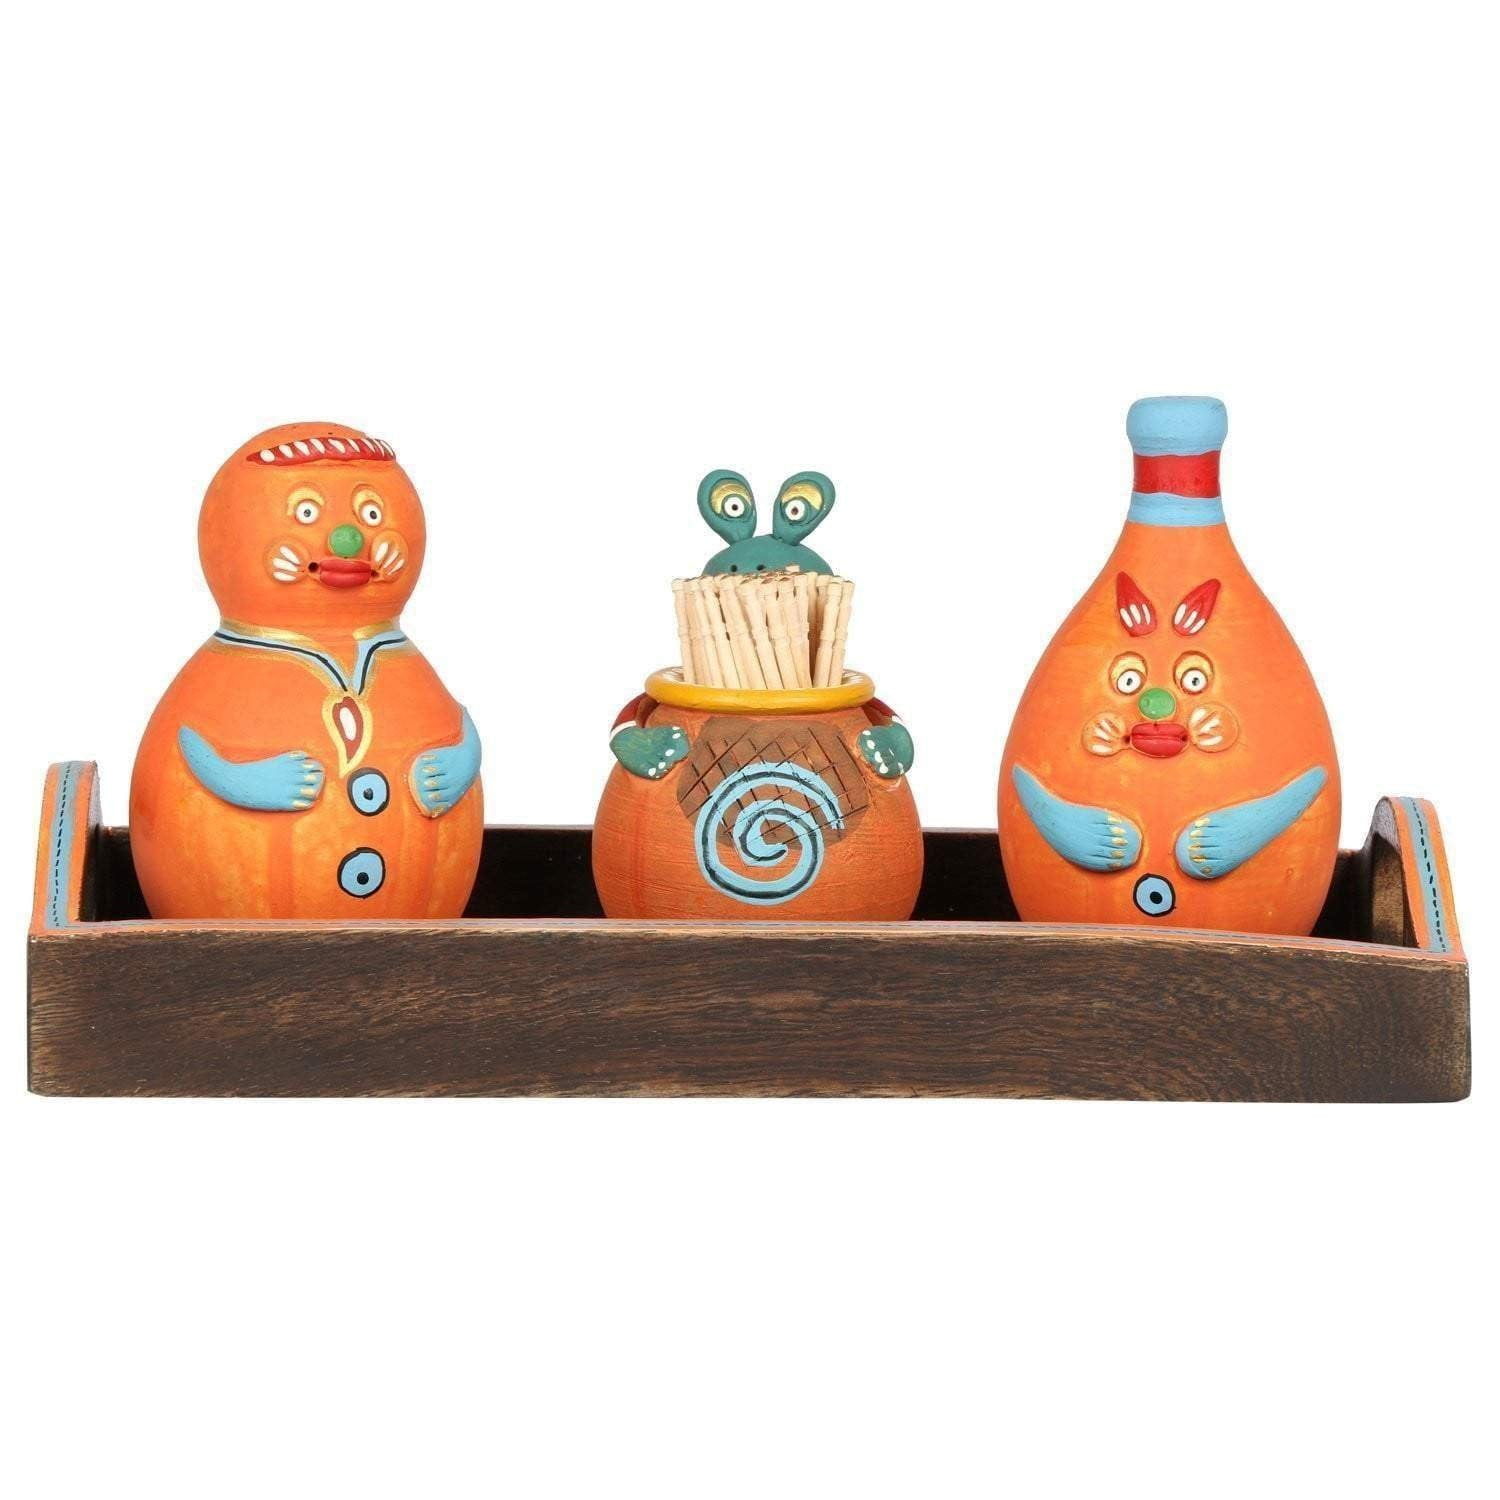 Handicraft Salt and Pepper Holder with Wooden Tray and Tooth Pick Holder